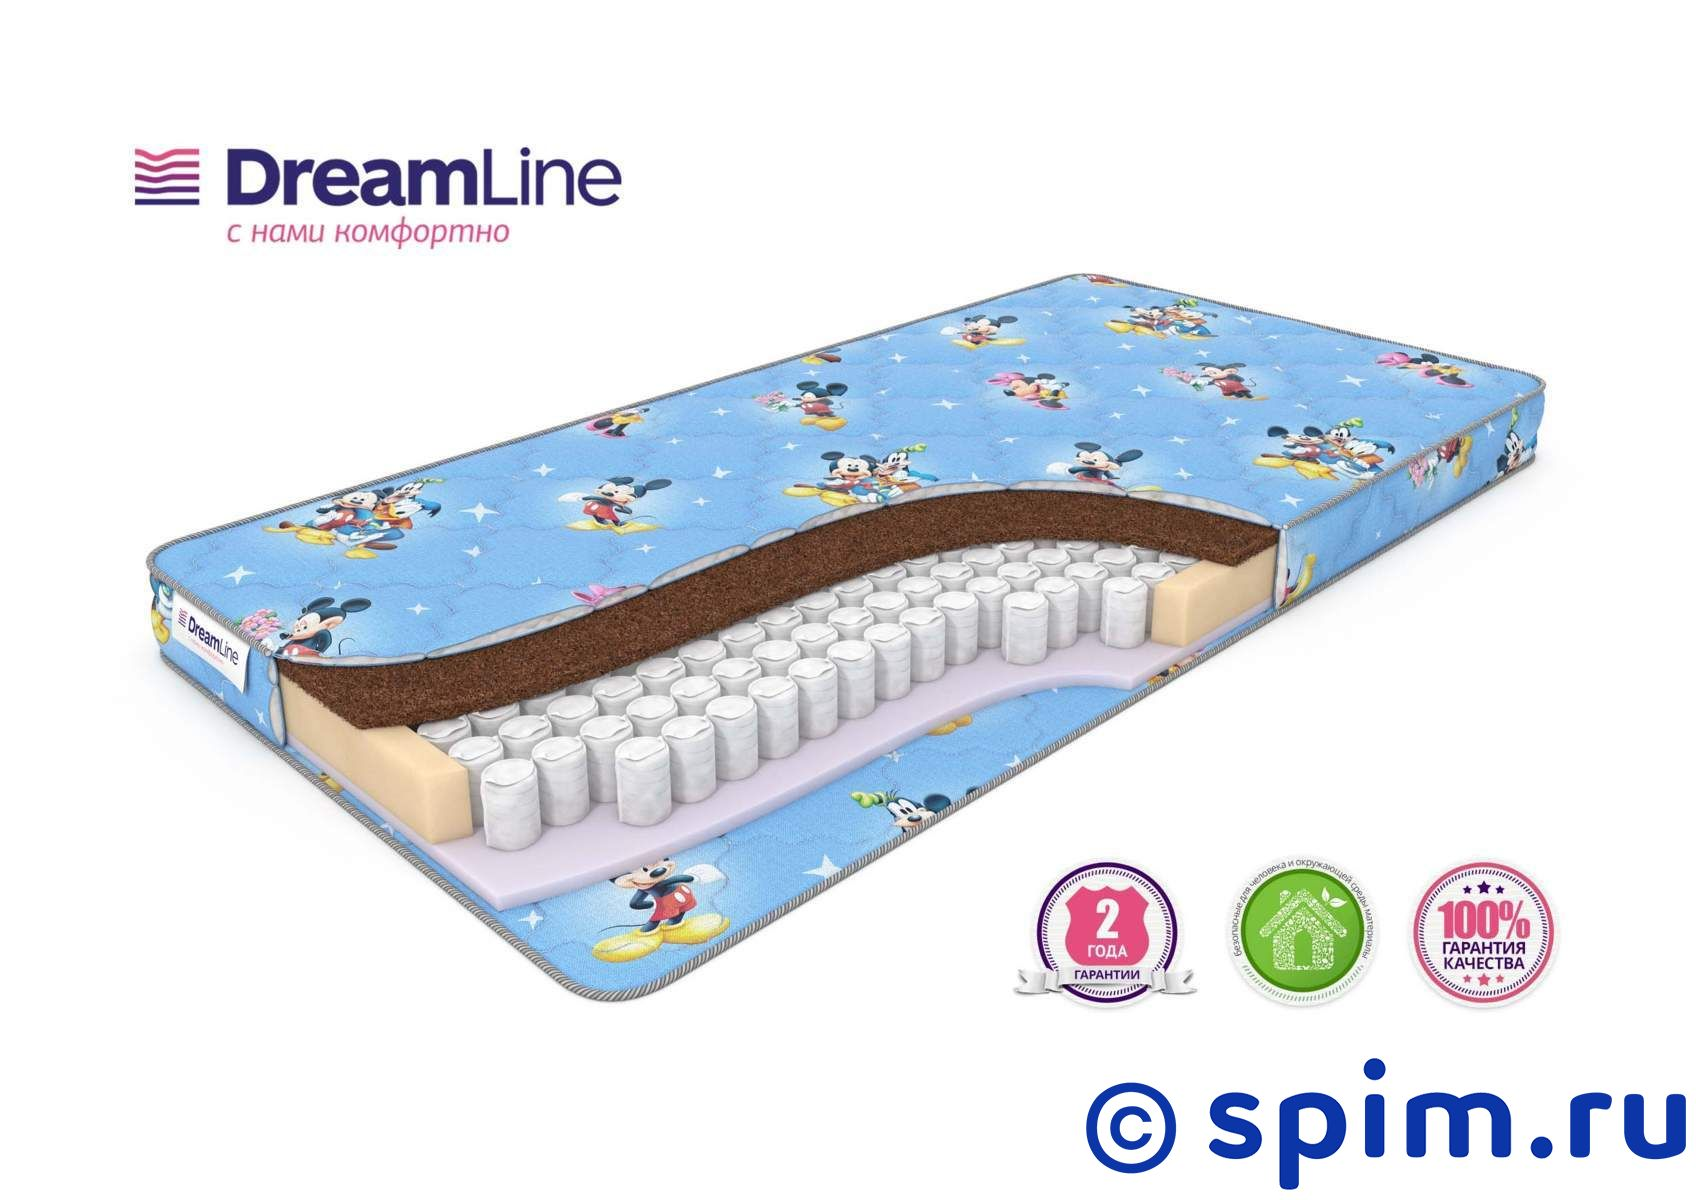 Детский матрас DreamLine Baby Sleep Dream Tfk 70х140 см уровень stabila тип 70м 180 см 02878